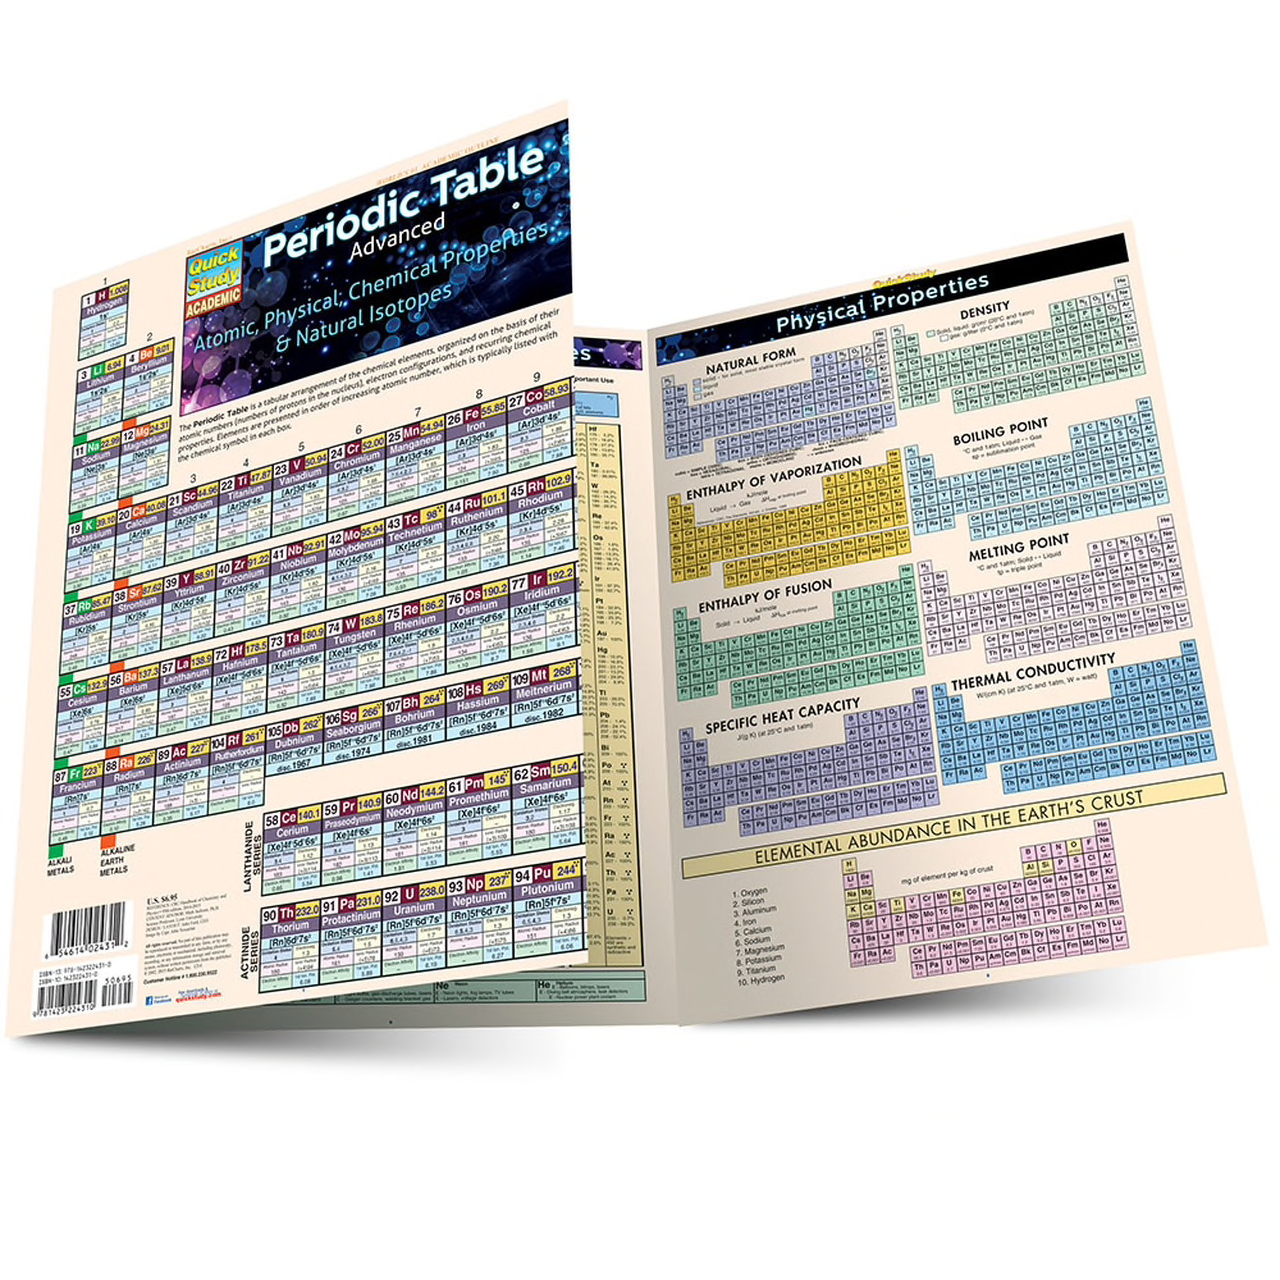 Periodic Table Advanced QuickStudy Laminated Study Guide